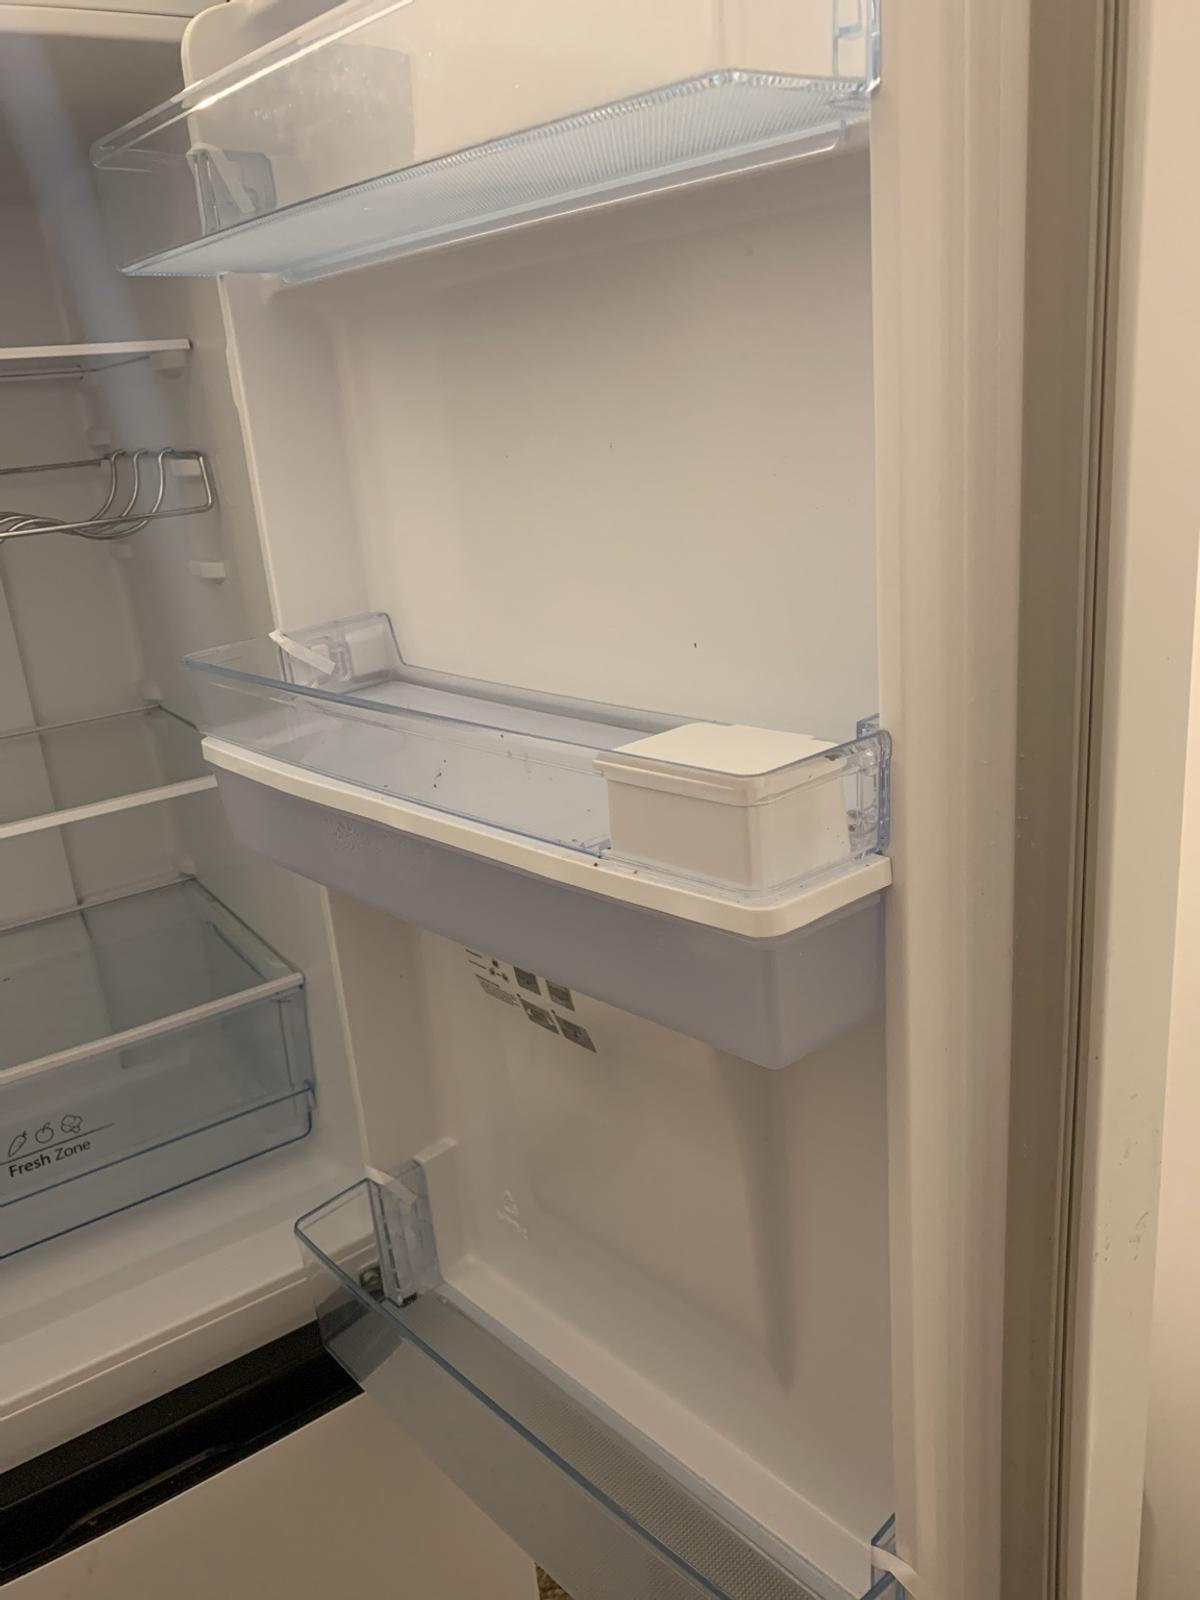 Brought April 2018. Fridge works completely fine but freezer has a little issue, it freezes the food but struggles to freeze ice cream (maybe not cold enough)  Any question please ask